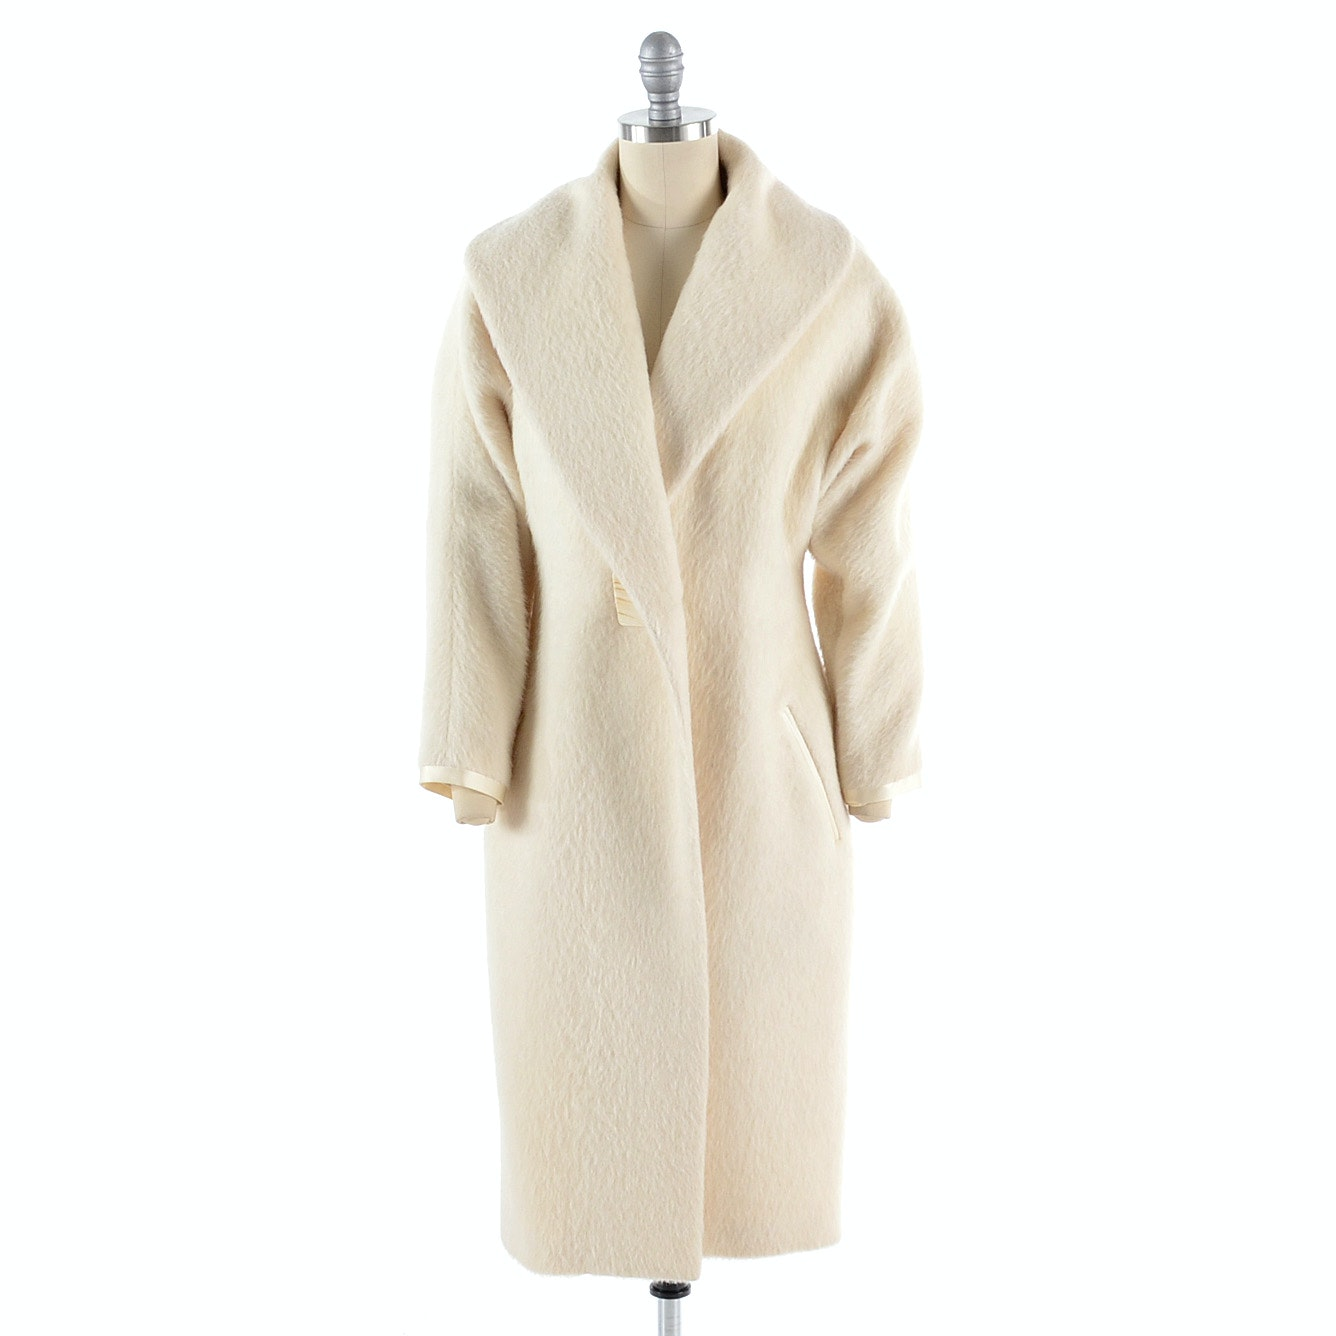 Richard Tyler Couture Ivory Wool and Silk Coat